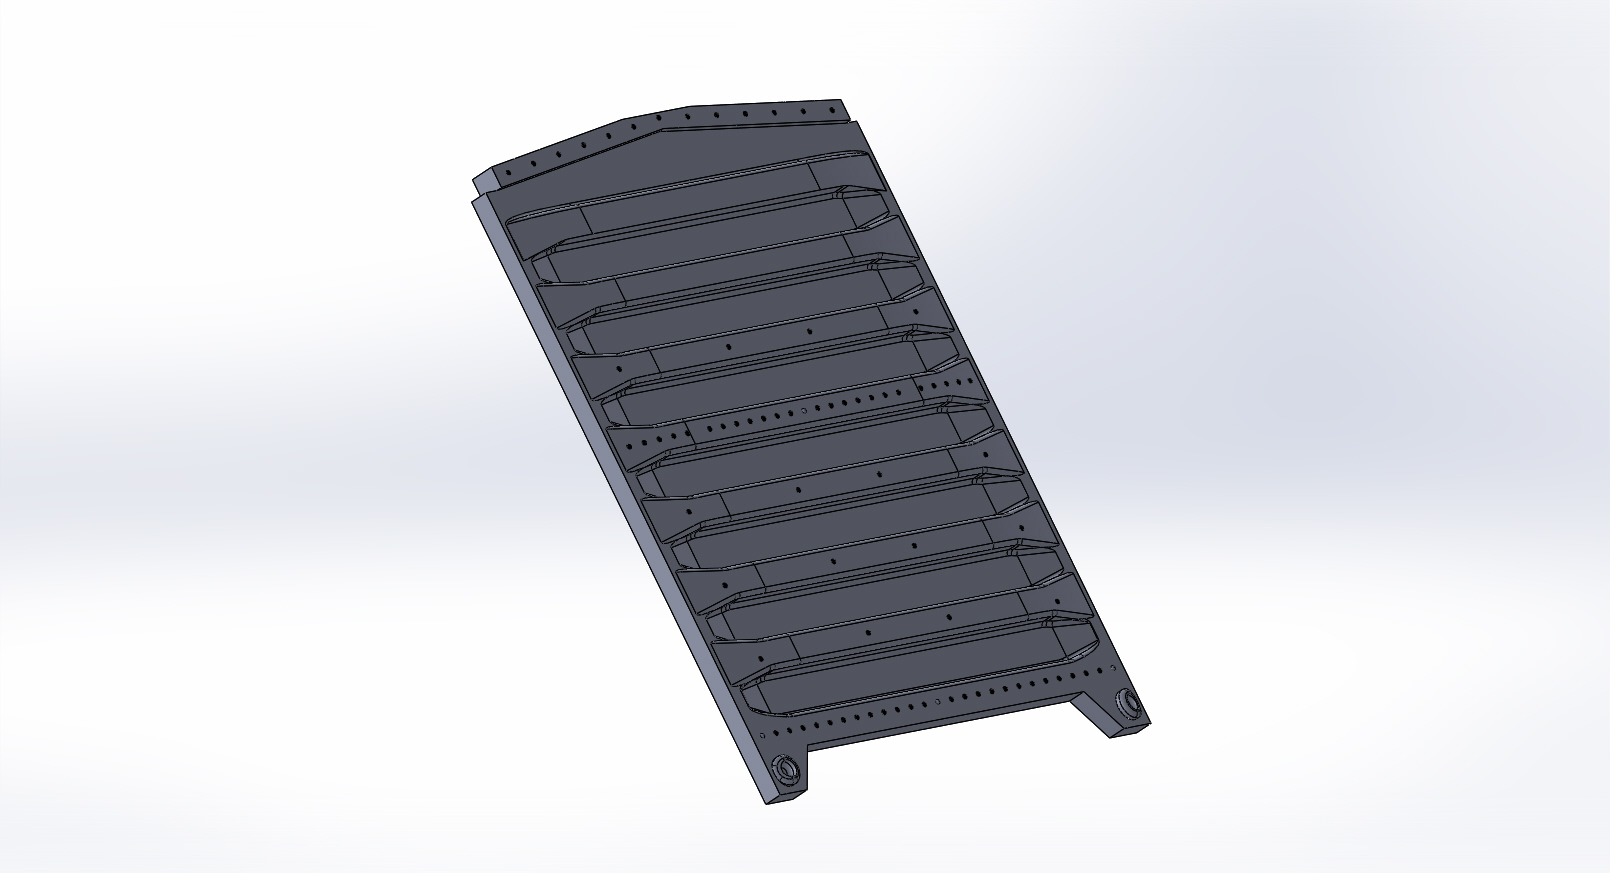 Solidworks model of train piece 2